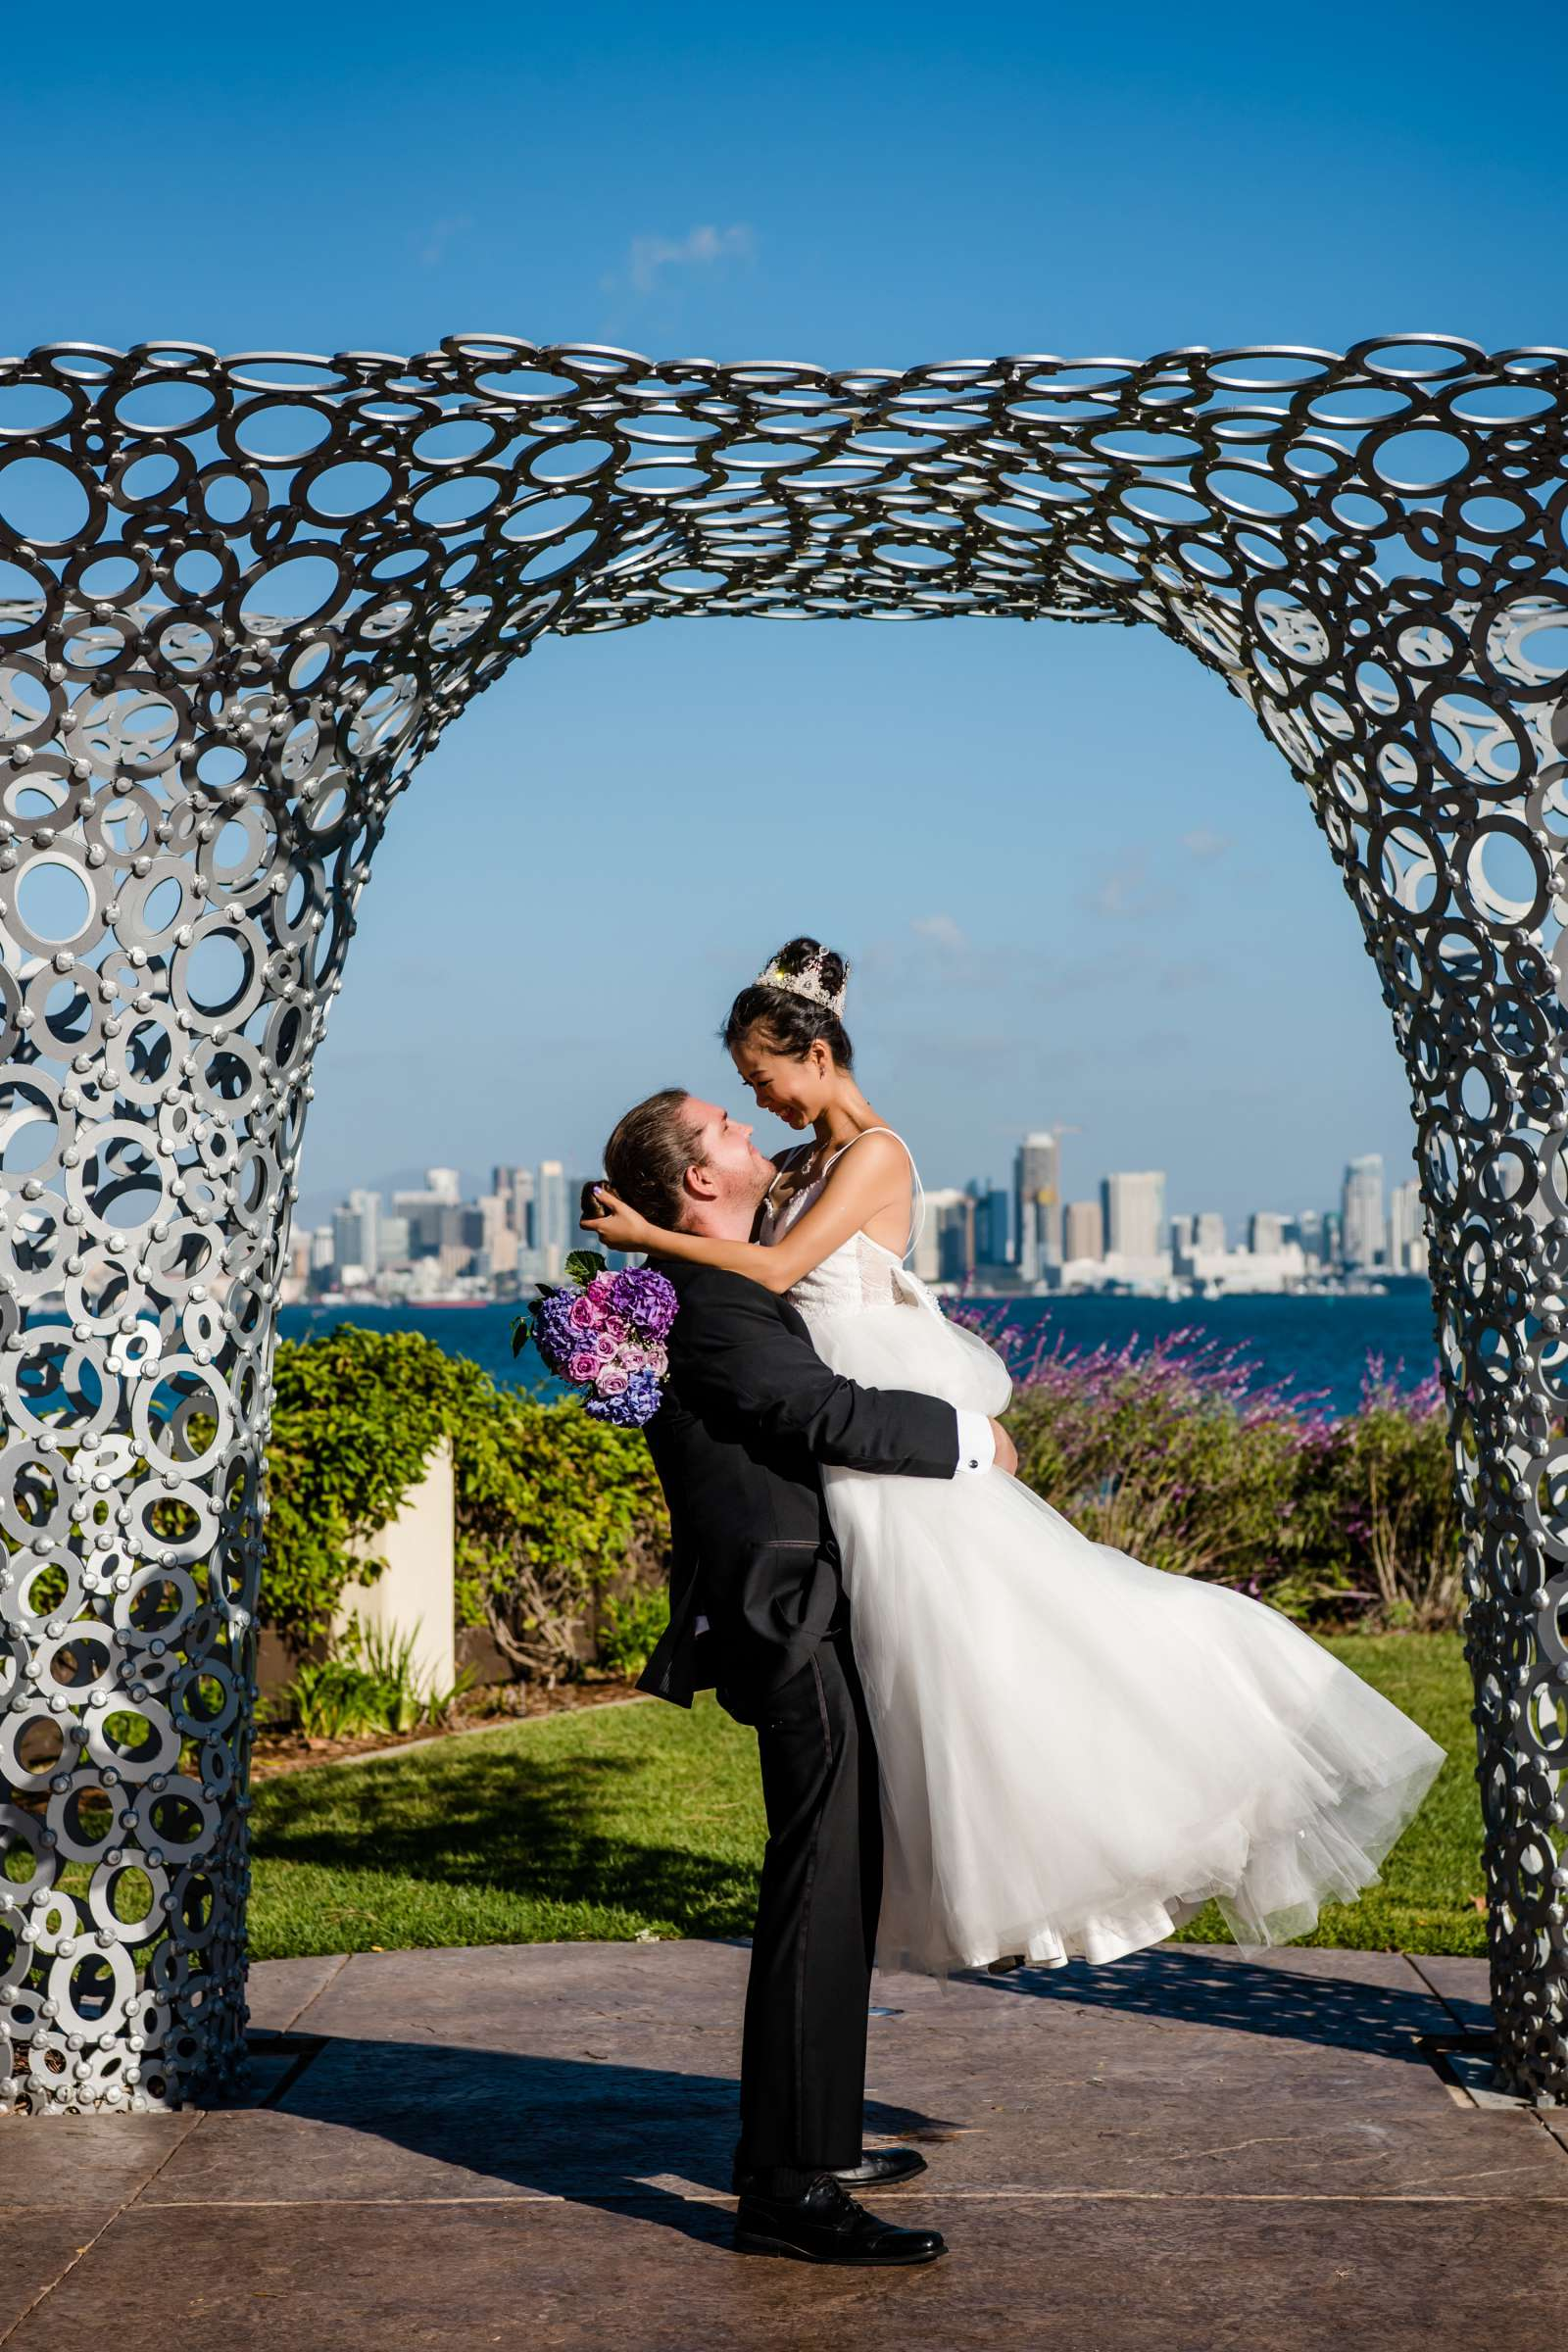 Tom Hams Lighthouse Wedding, Mei and Brendan Wedding Photo #275573 by True Photography